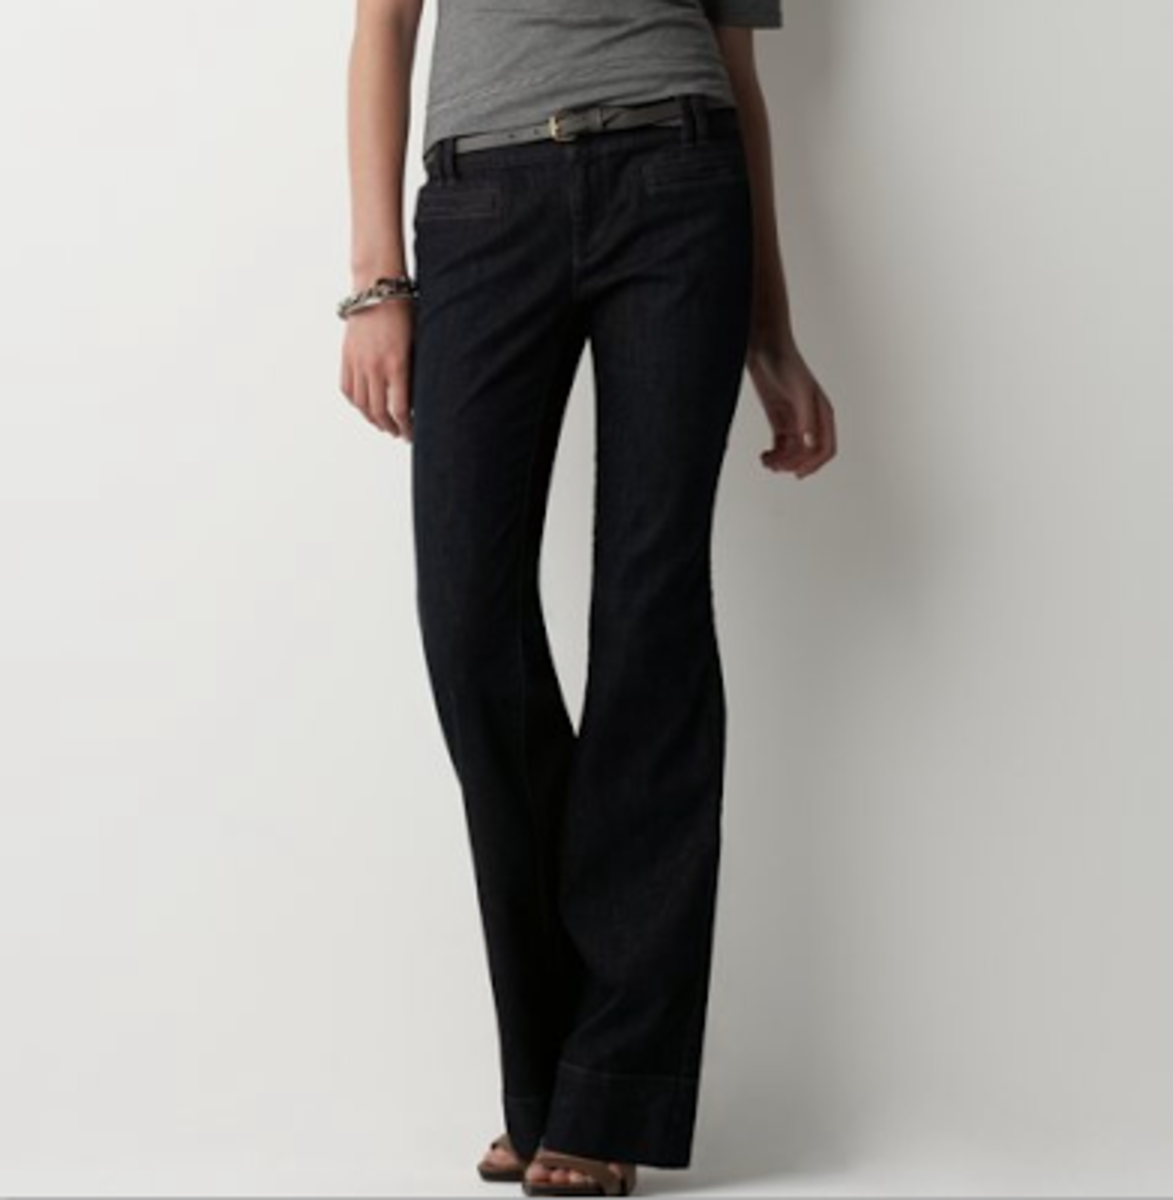 As a general rule, trouser jeans will fit most body types well.